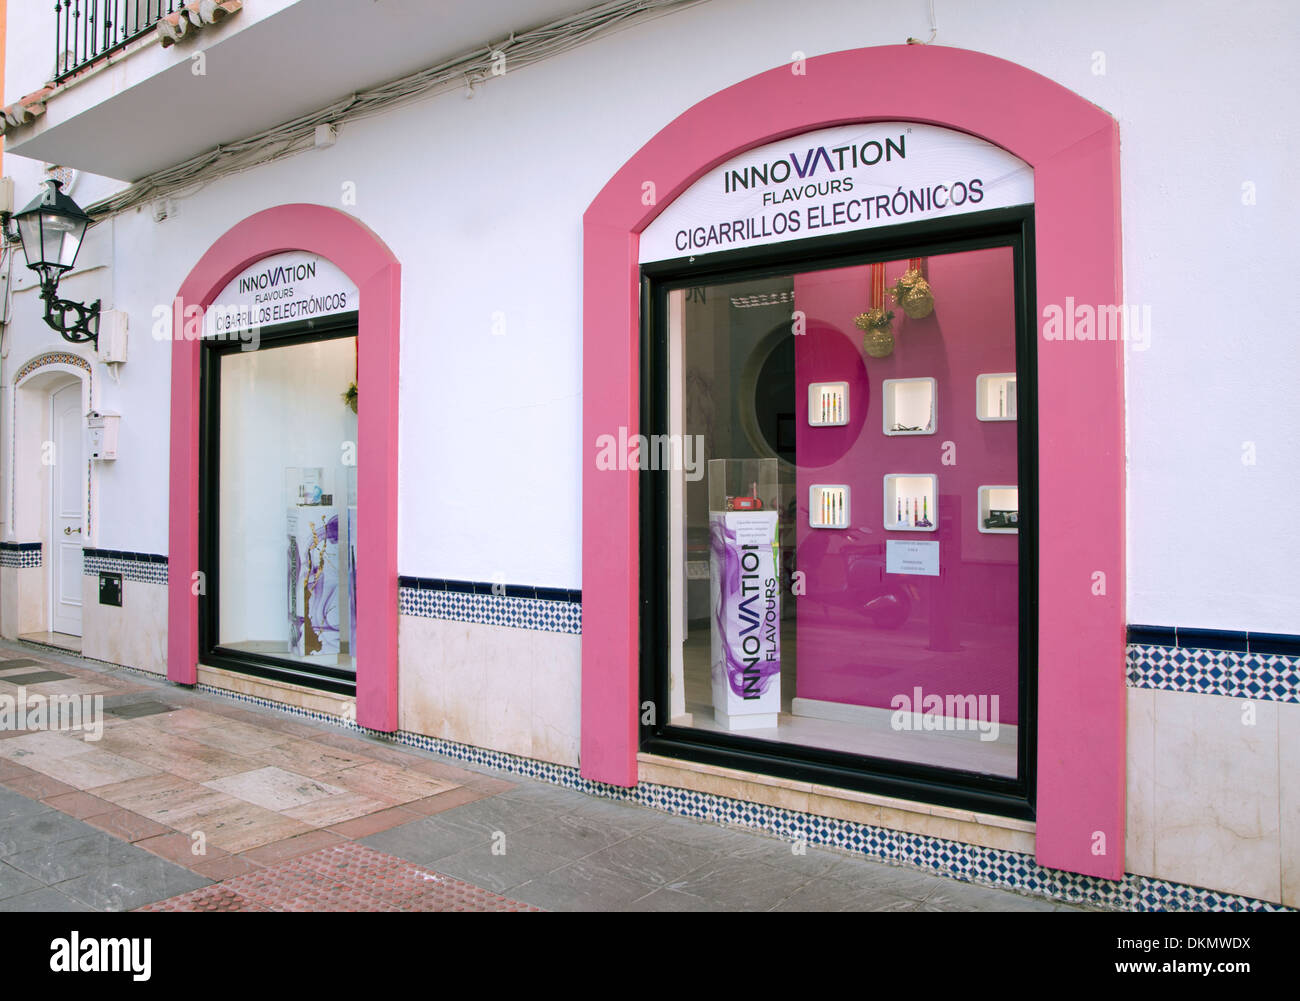 A shop selling electronic cigarettes or e-cigarettes in Fuengirola, Spain. - Stock Image